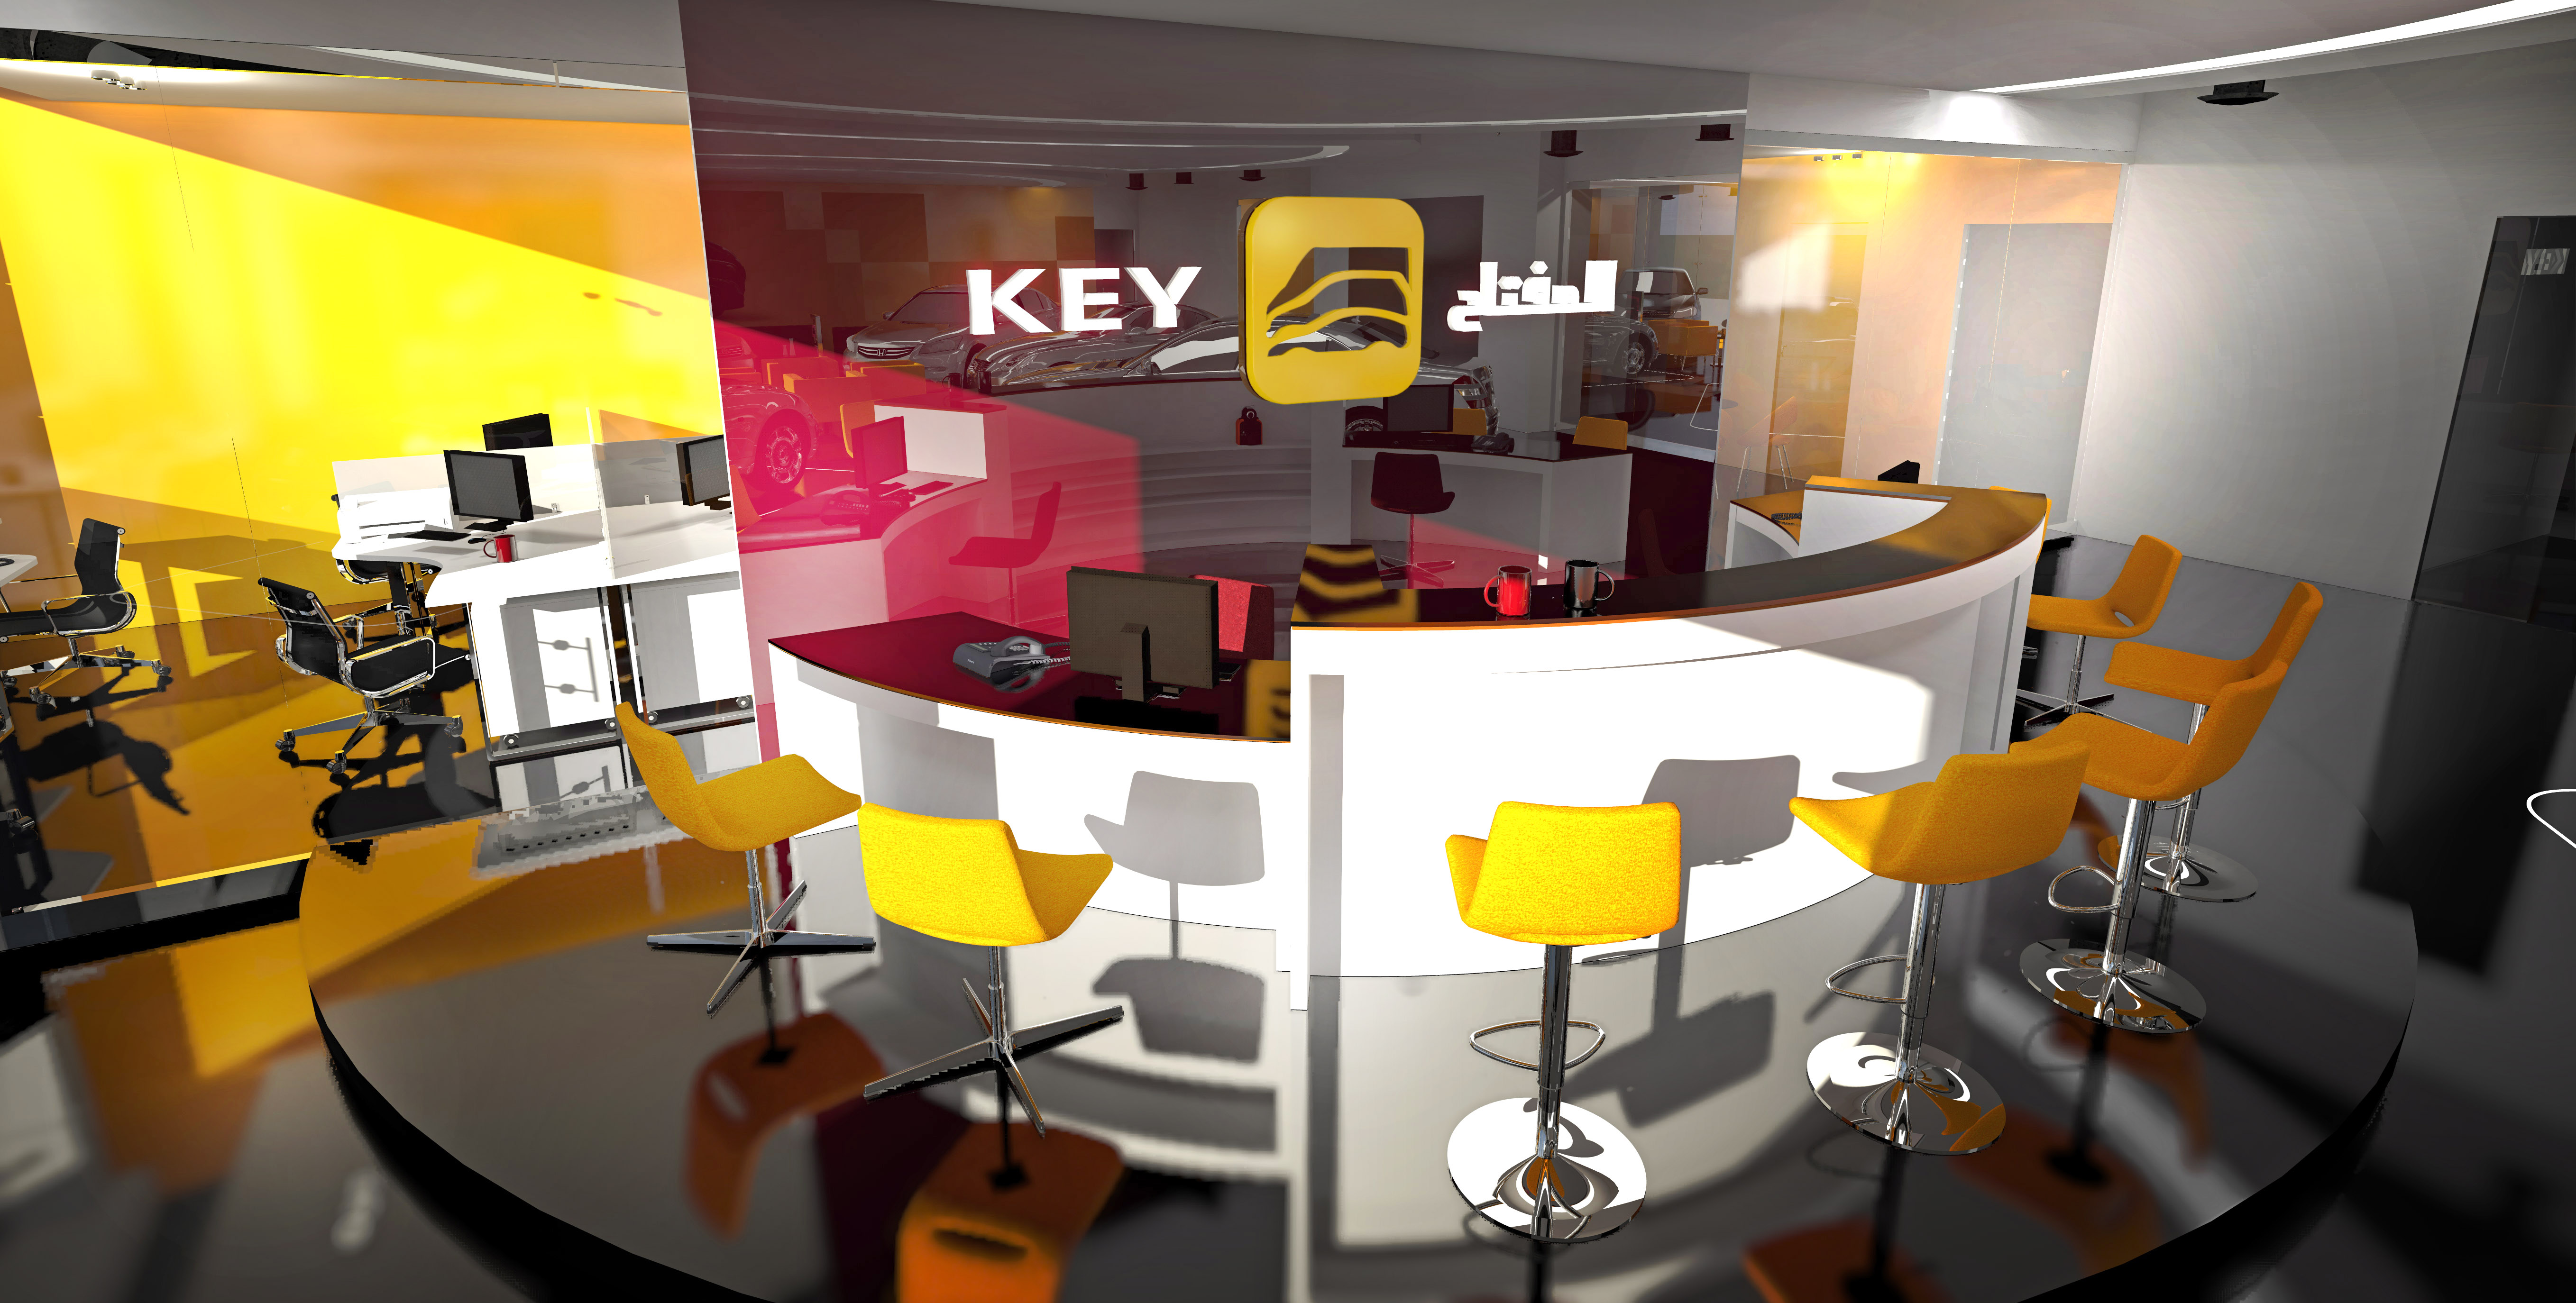 Key Car Rental HQ - KSA